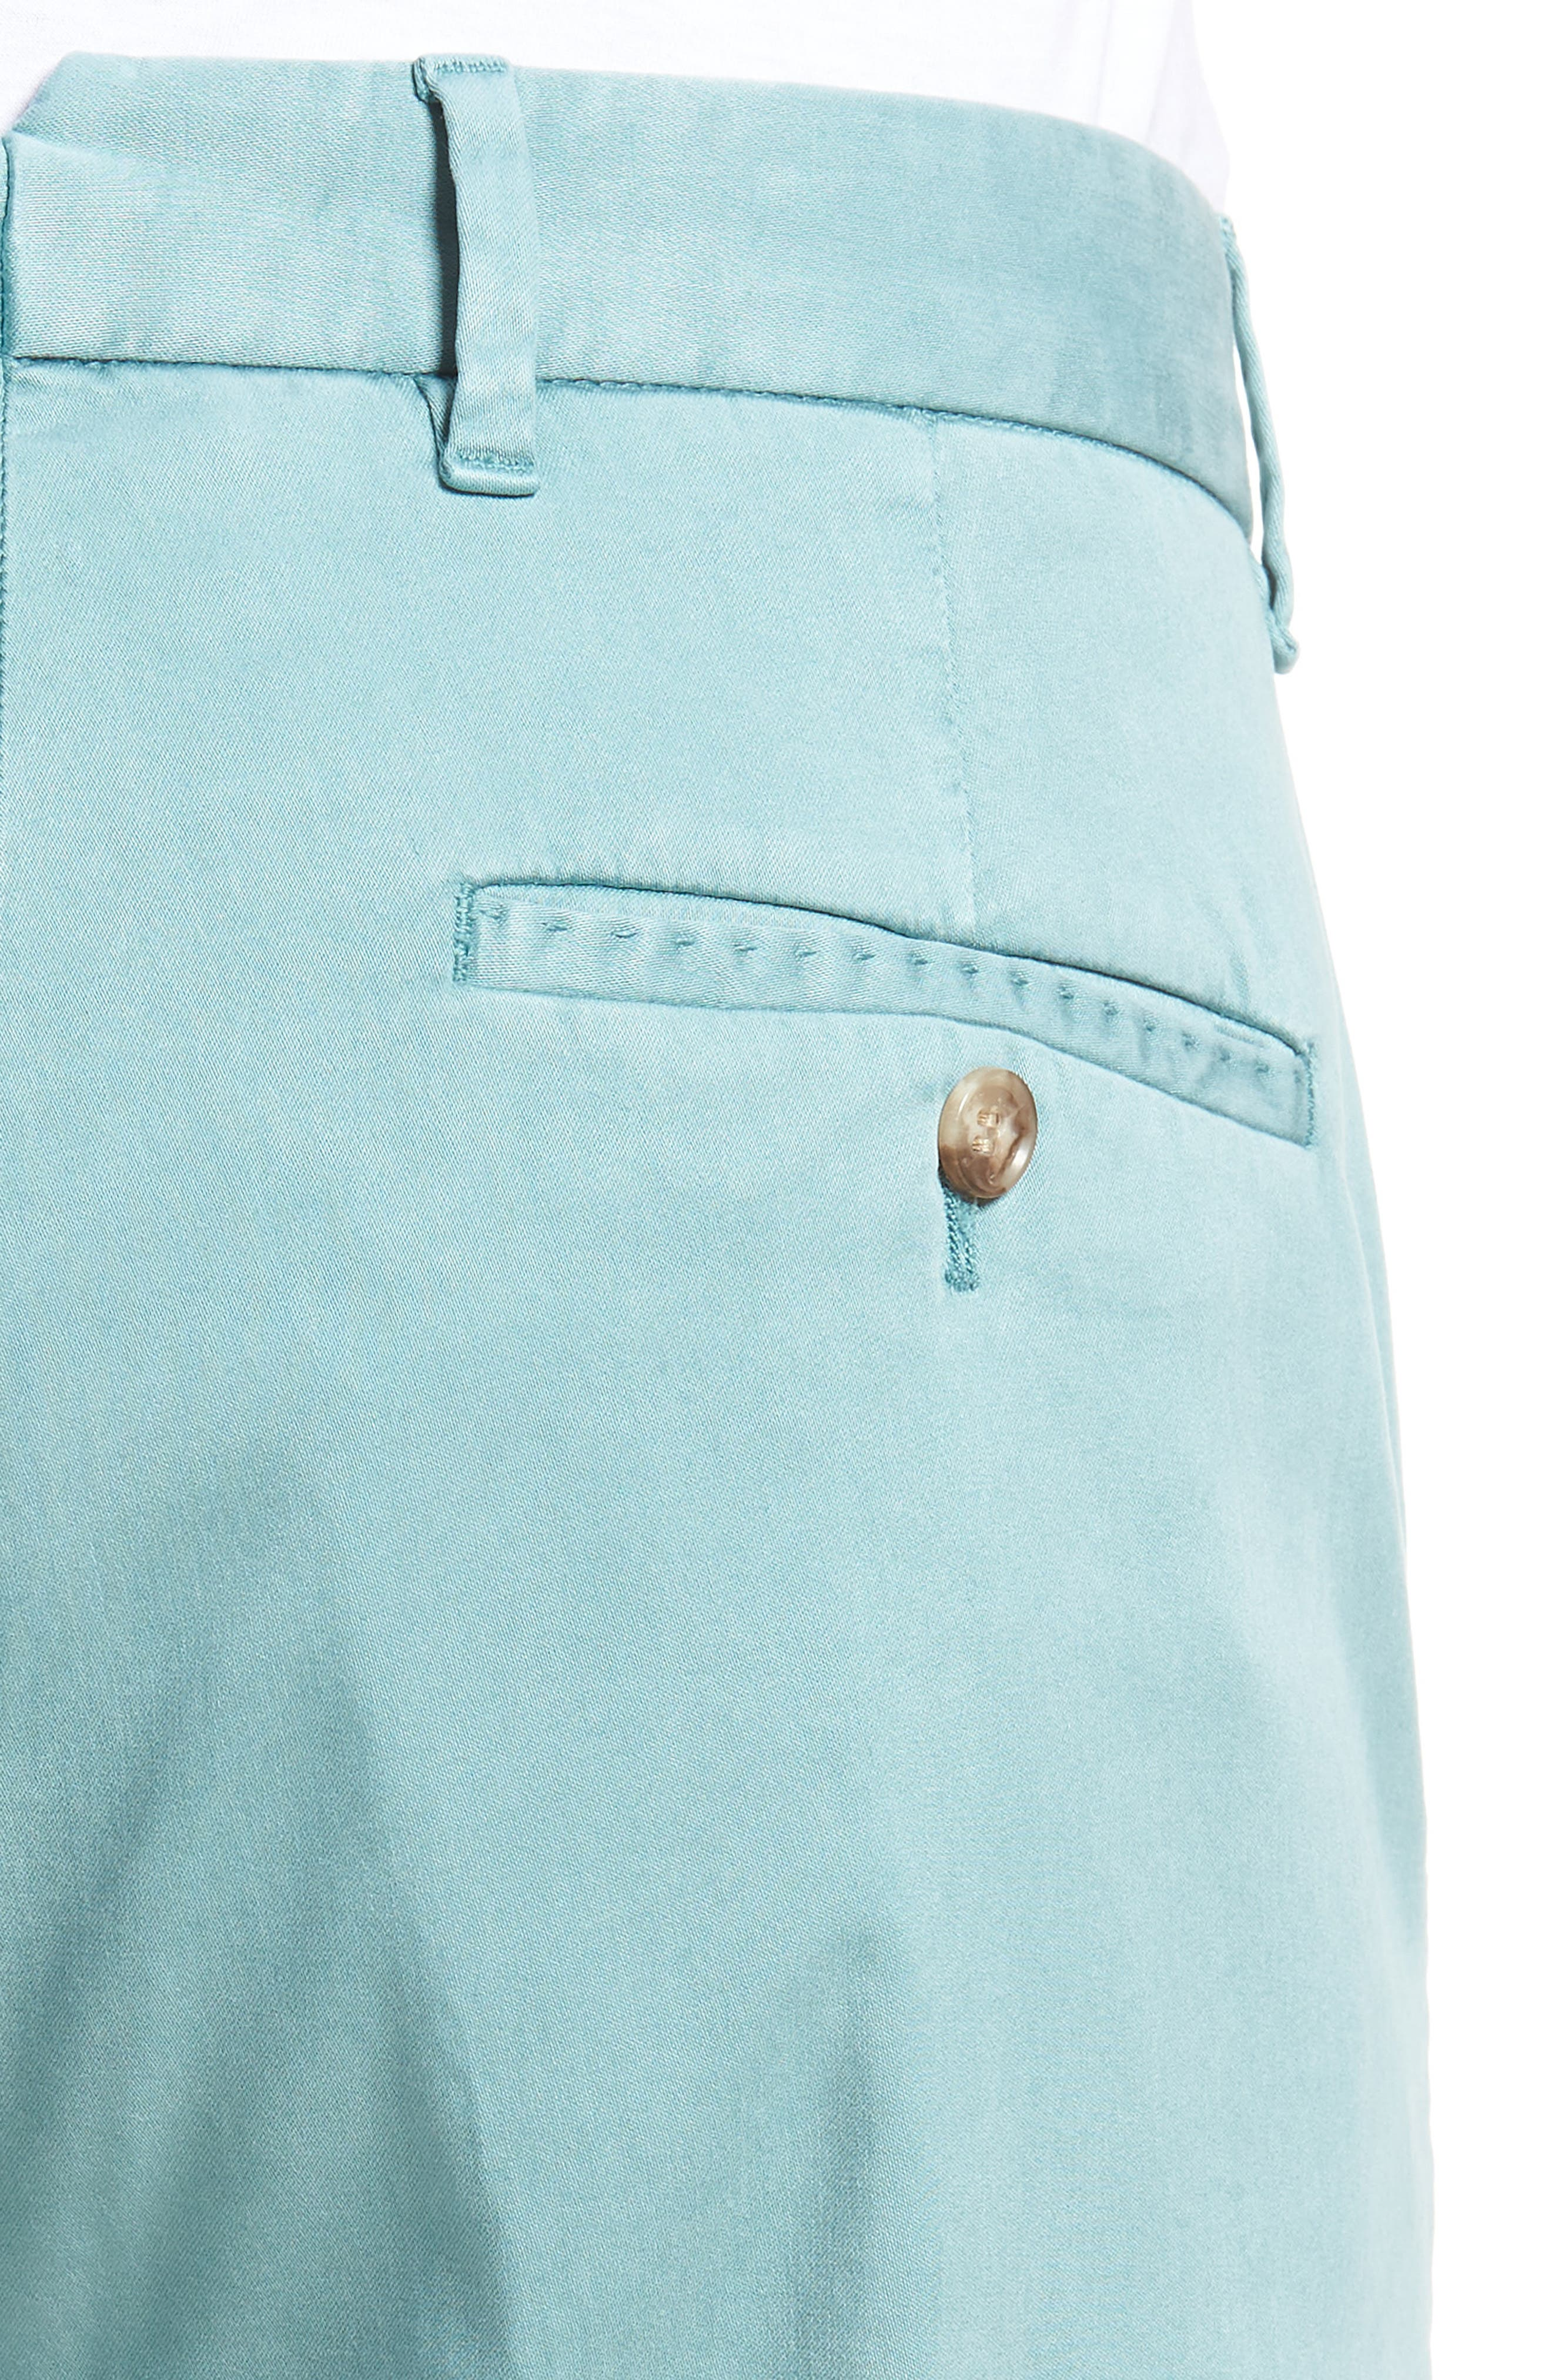 ZACHARY PRELL, Aster Straight Fit Pants, Alternate thumbnail 5, color, TEAL